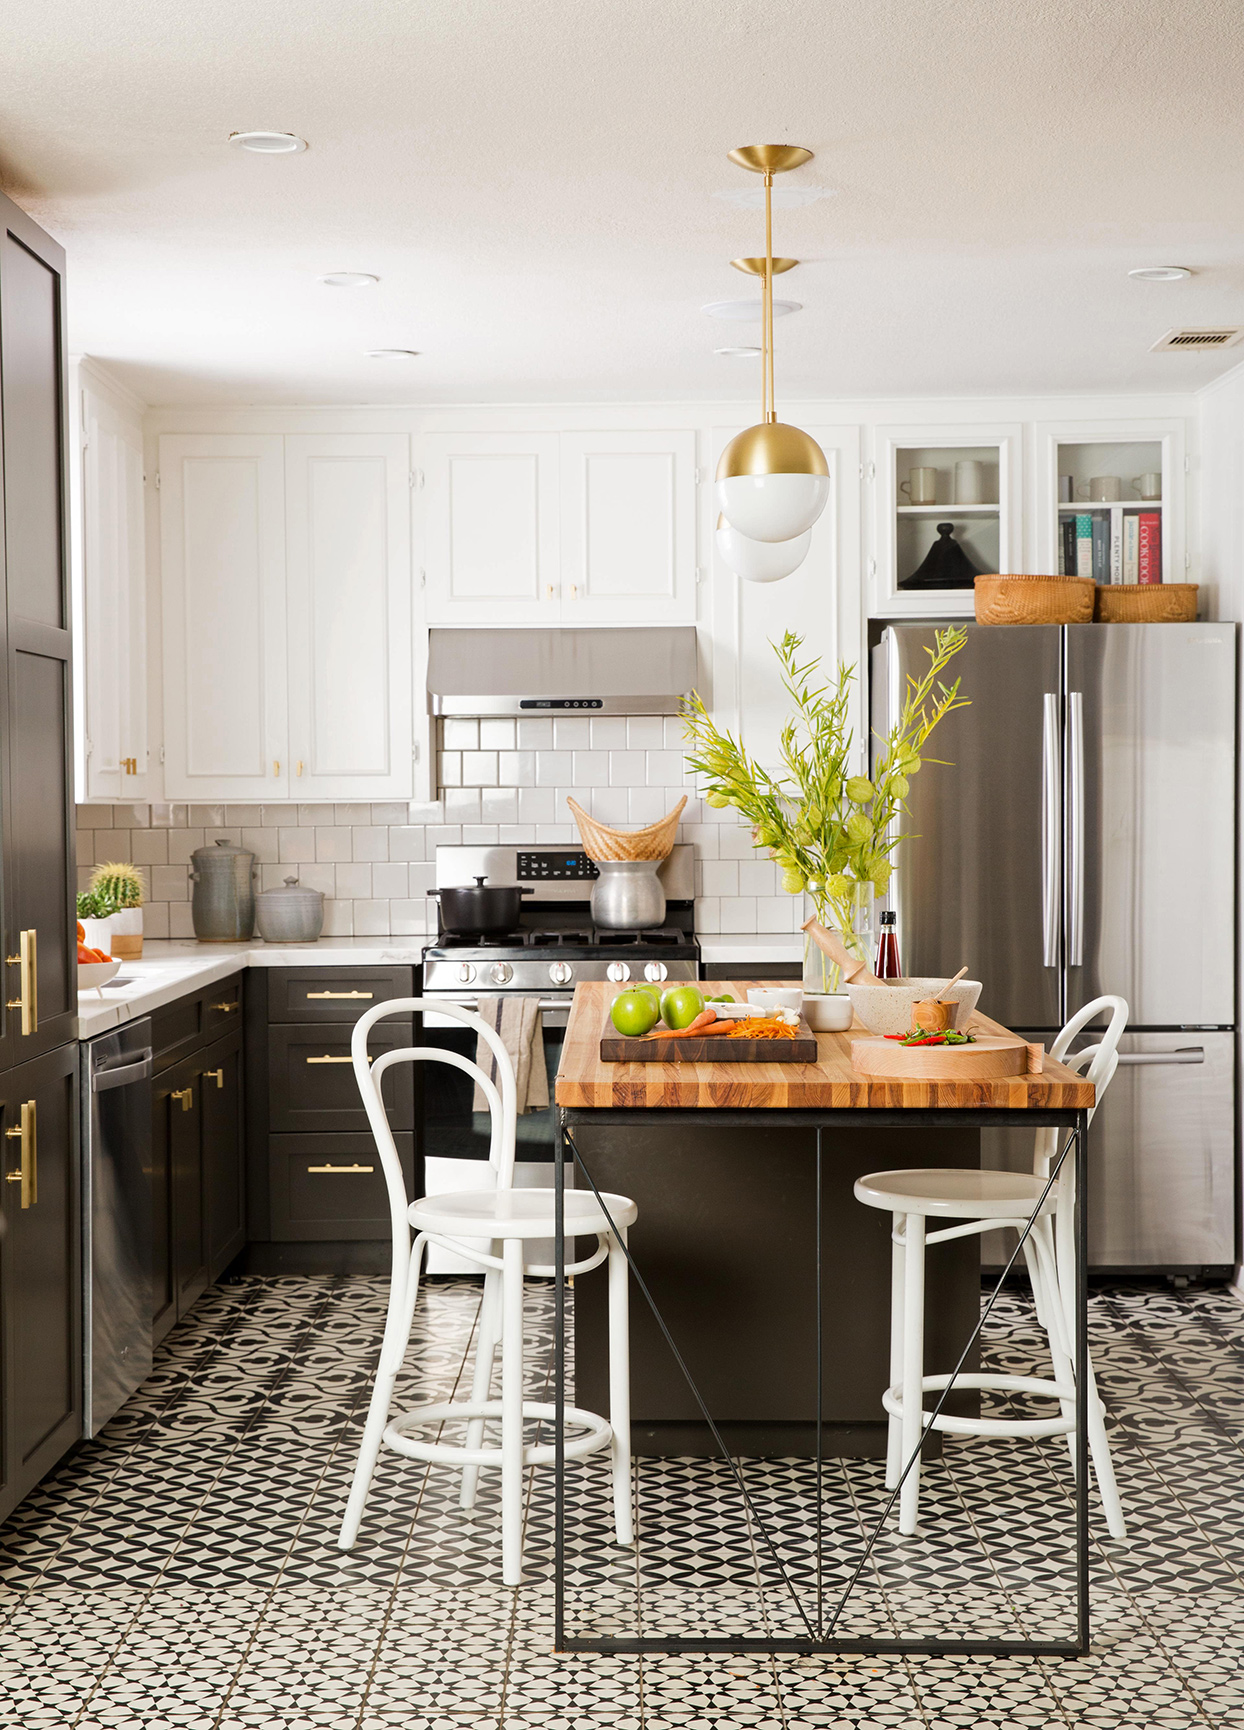 black and white kitchen with geometric tile floor